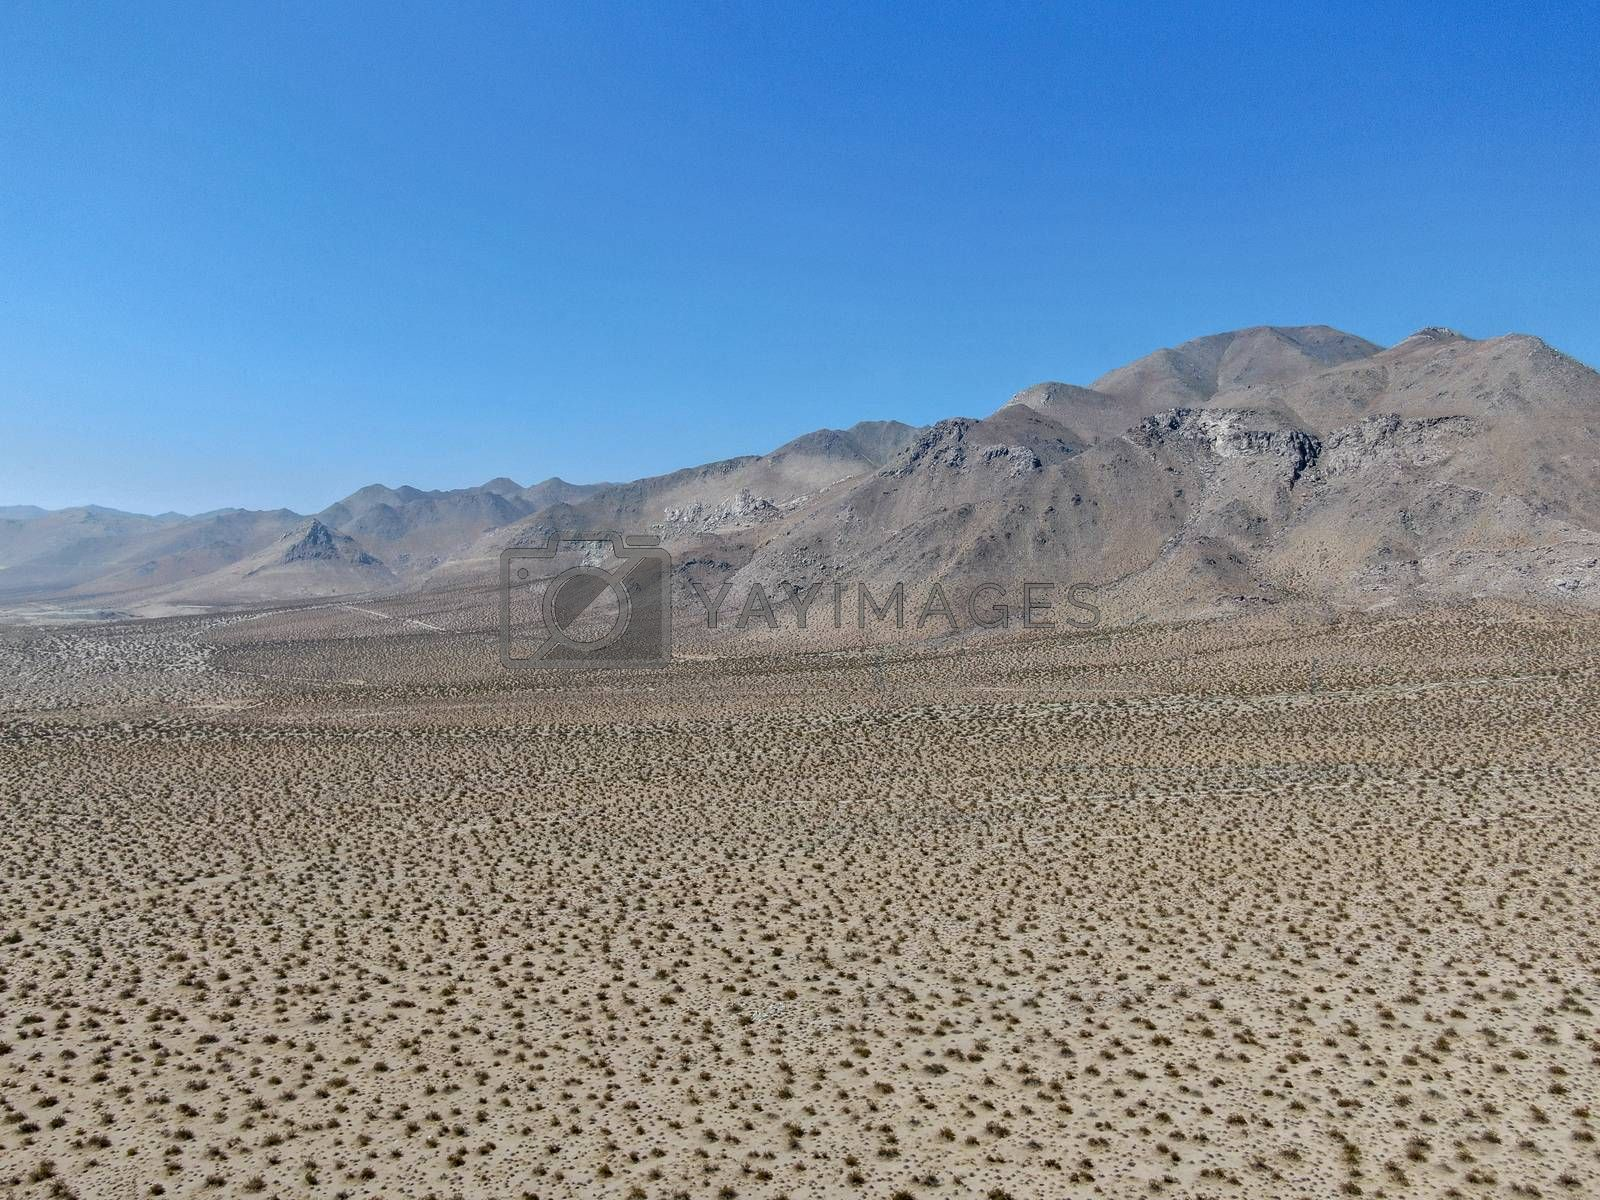 Royalty free image of Aerial view of desert hills under blue sky in California's Mojave desert, near Ridgecrest.  by Bonandbon